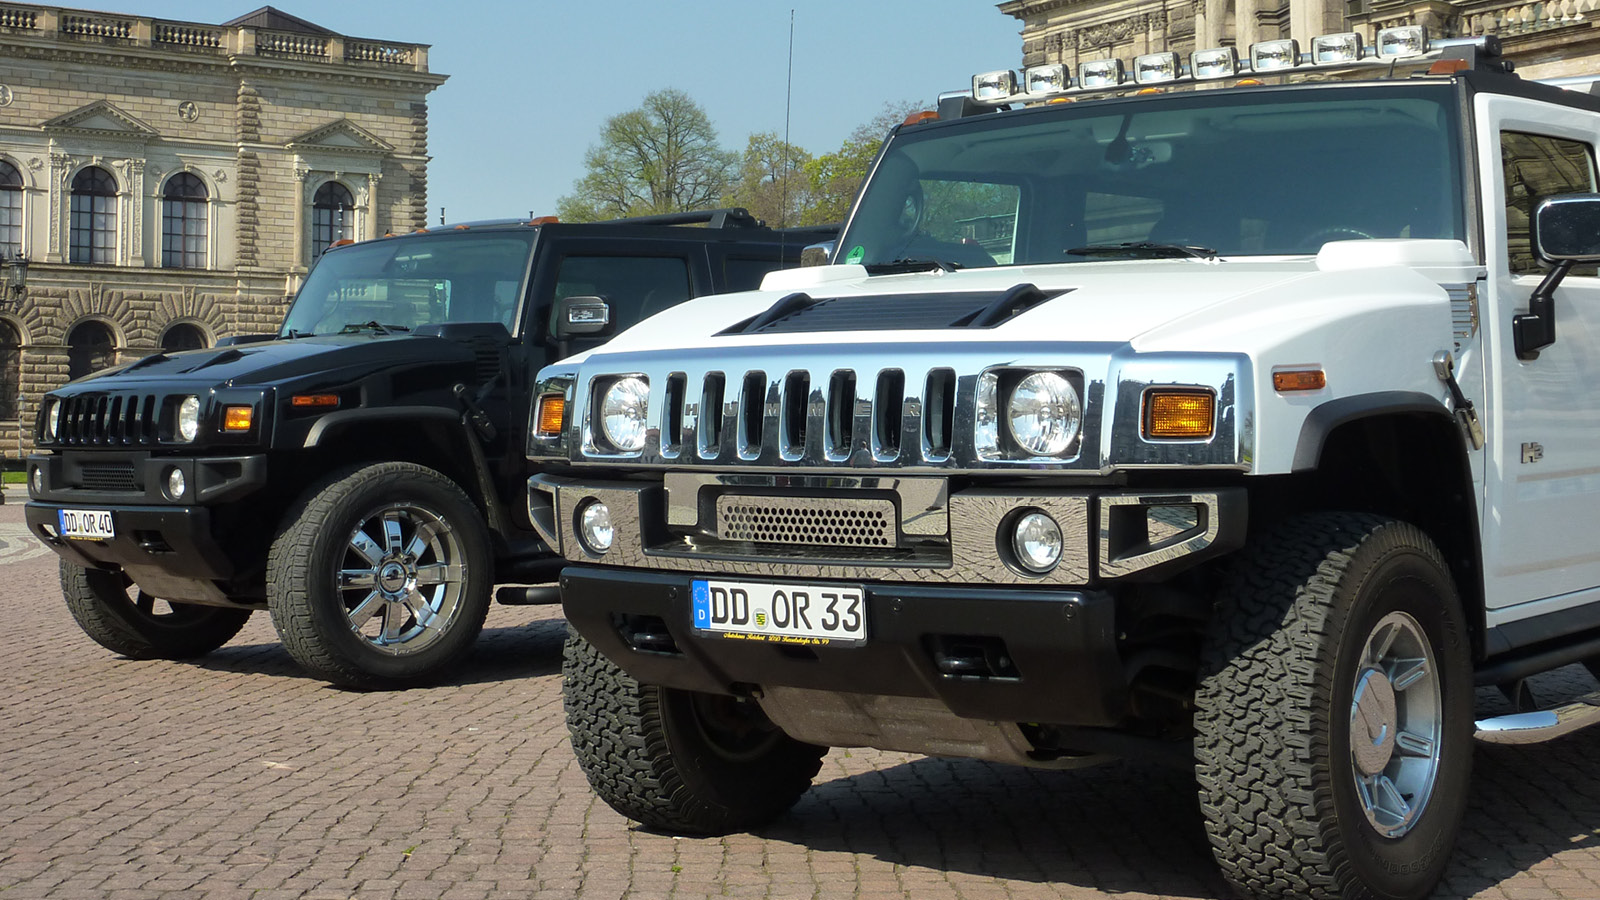 hummer h2 selber fahren in dresden erlebnisfabrik. Black Bedroom Furniture Sets. Home Design Ideas